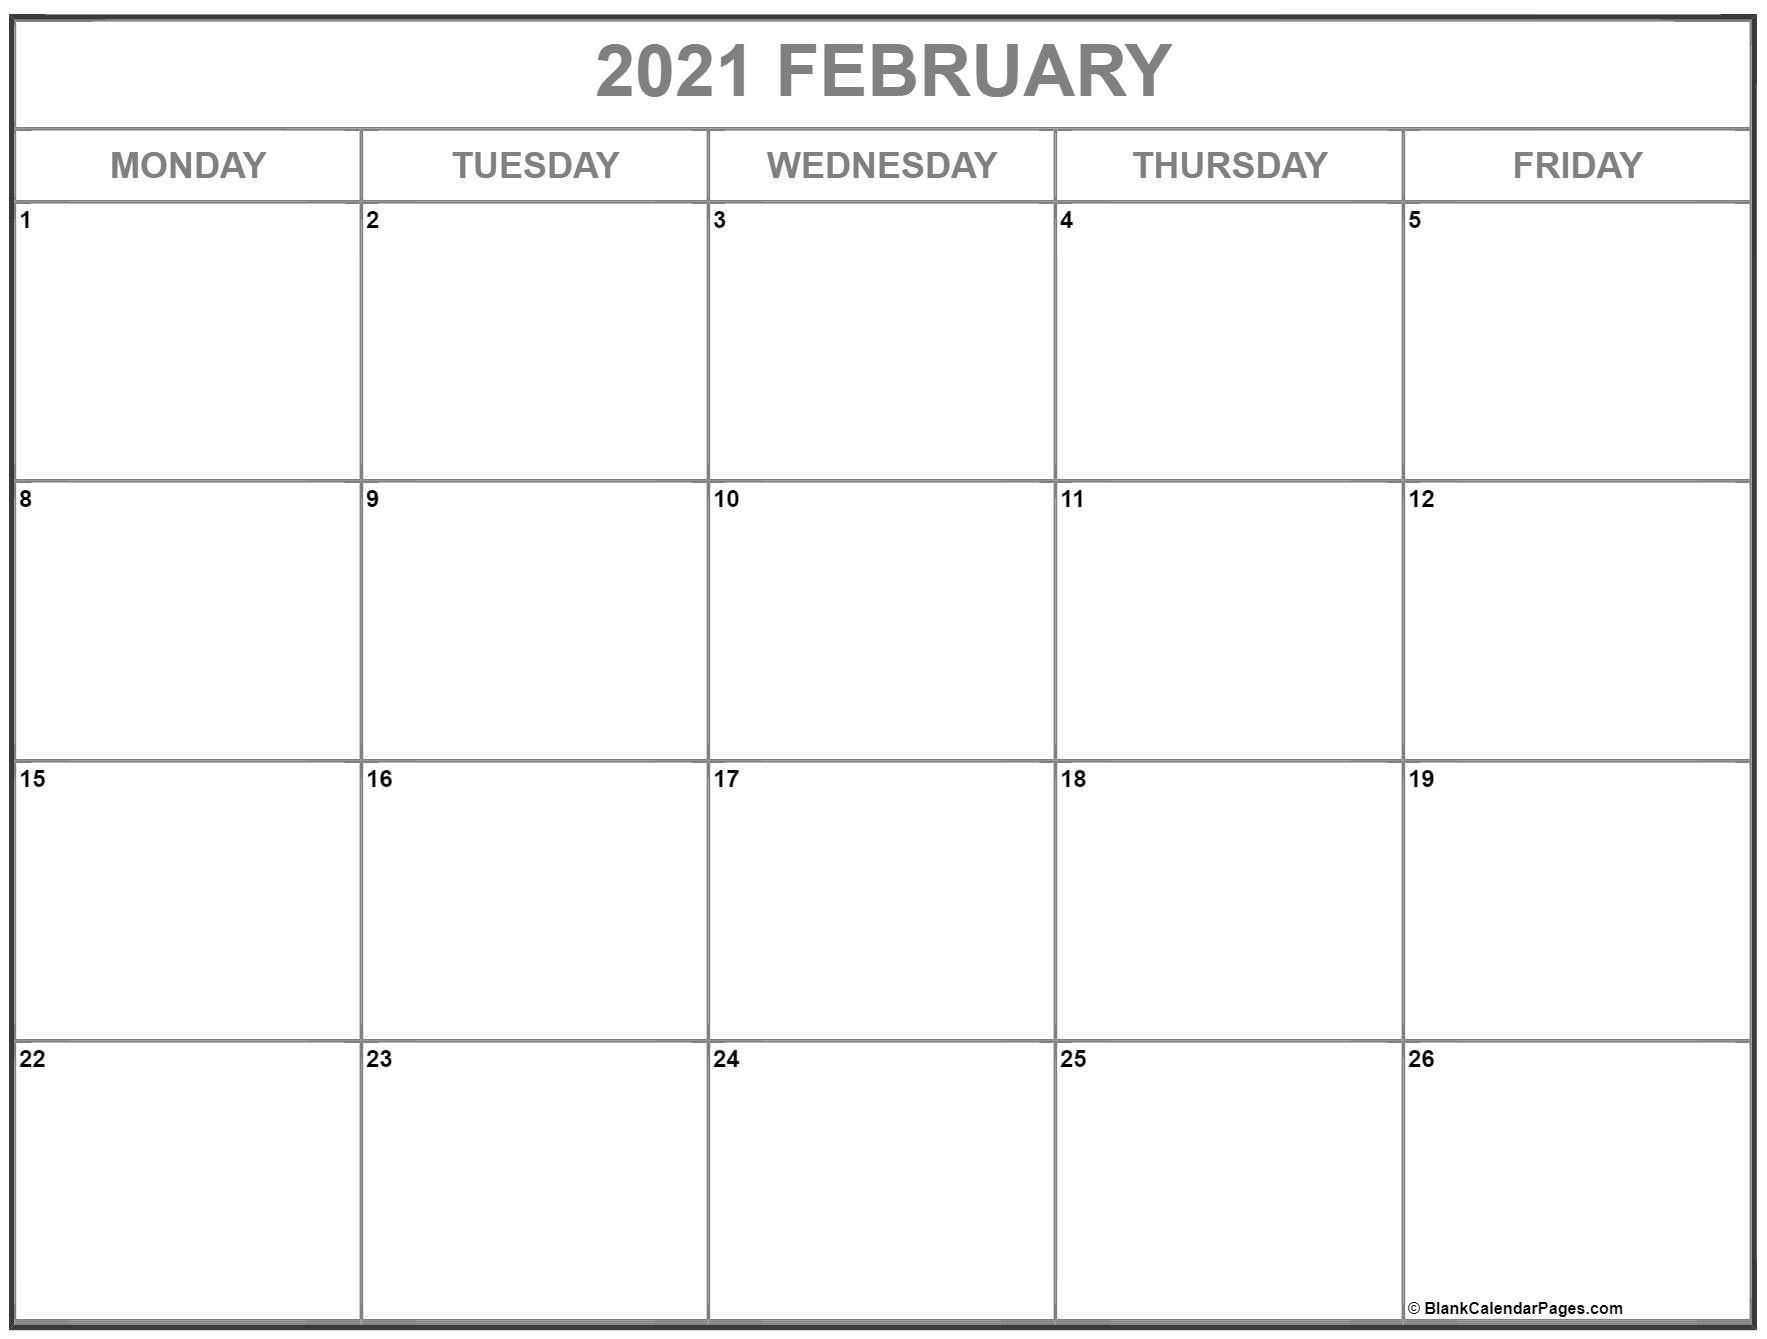 January February 2021 Calendar Monday To Friday In 2021